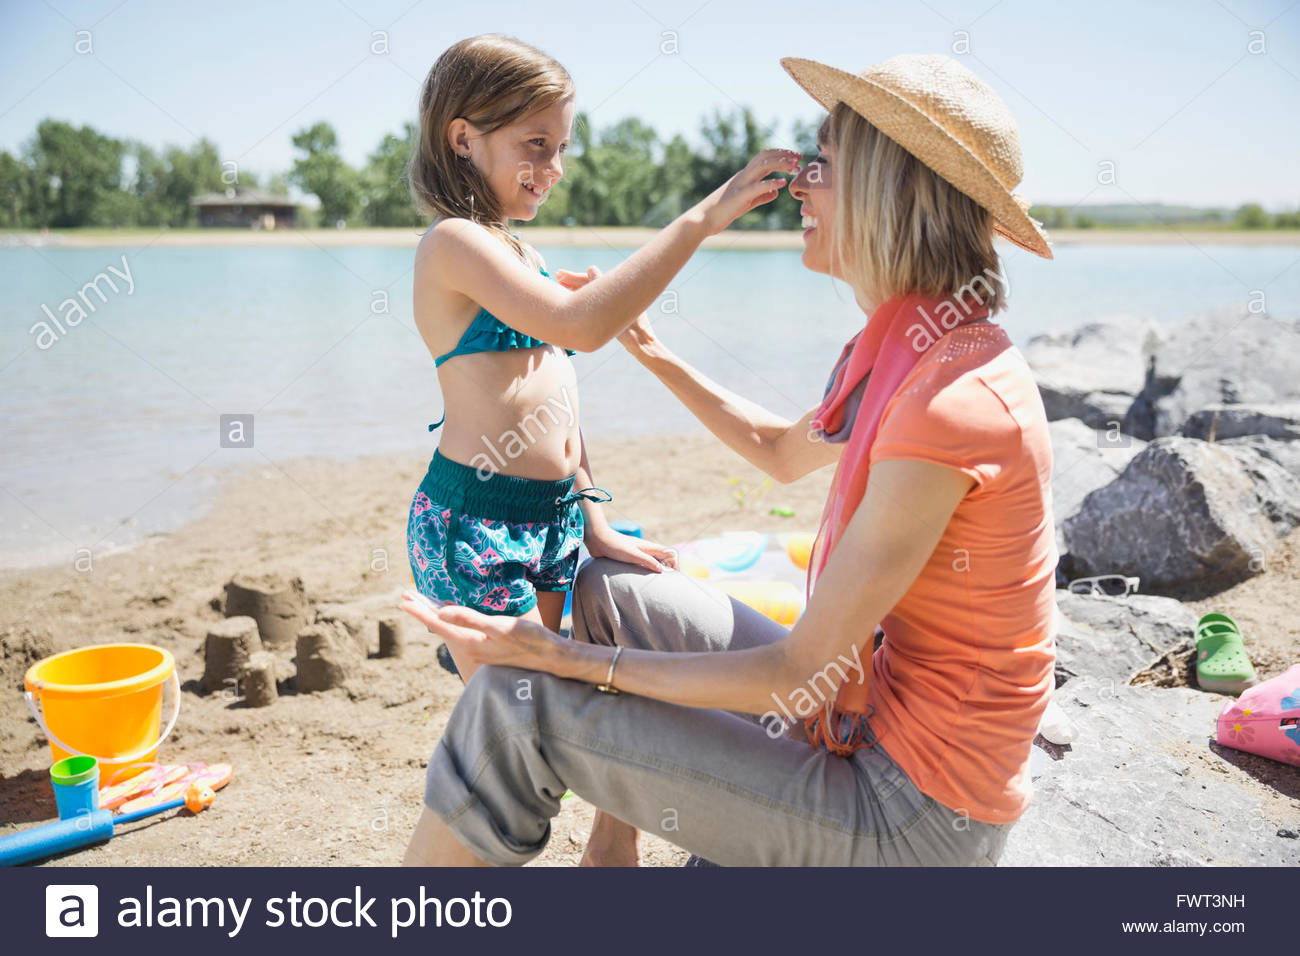 Grandmother and granddaughter applying sunscreen on each other - Stock Image